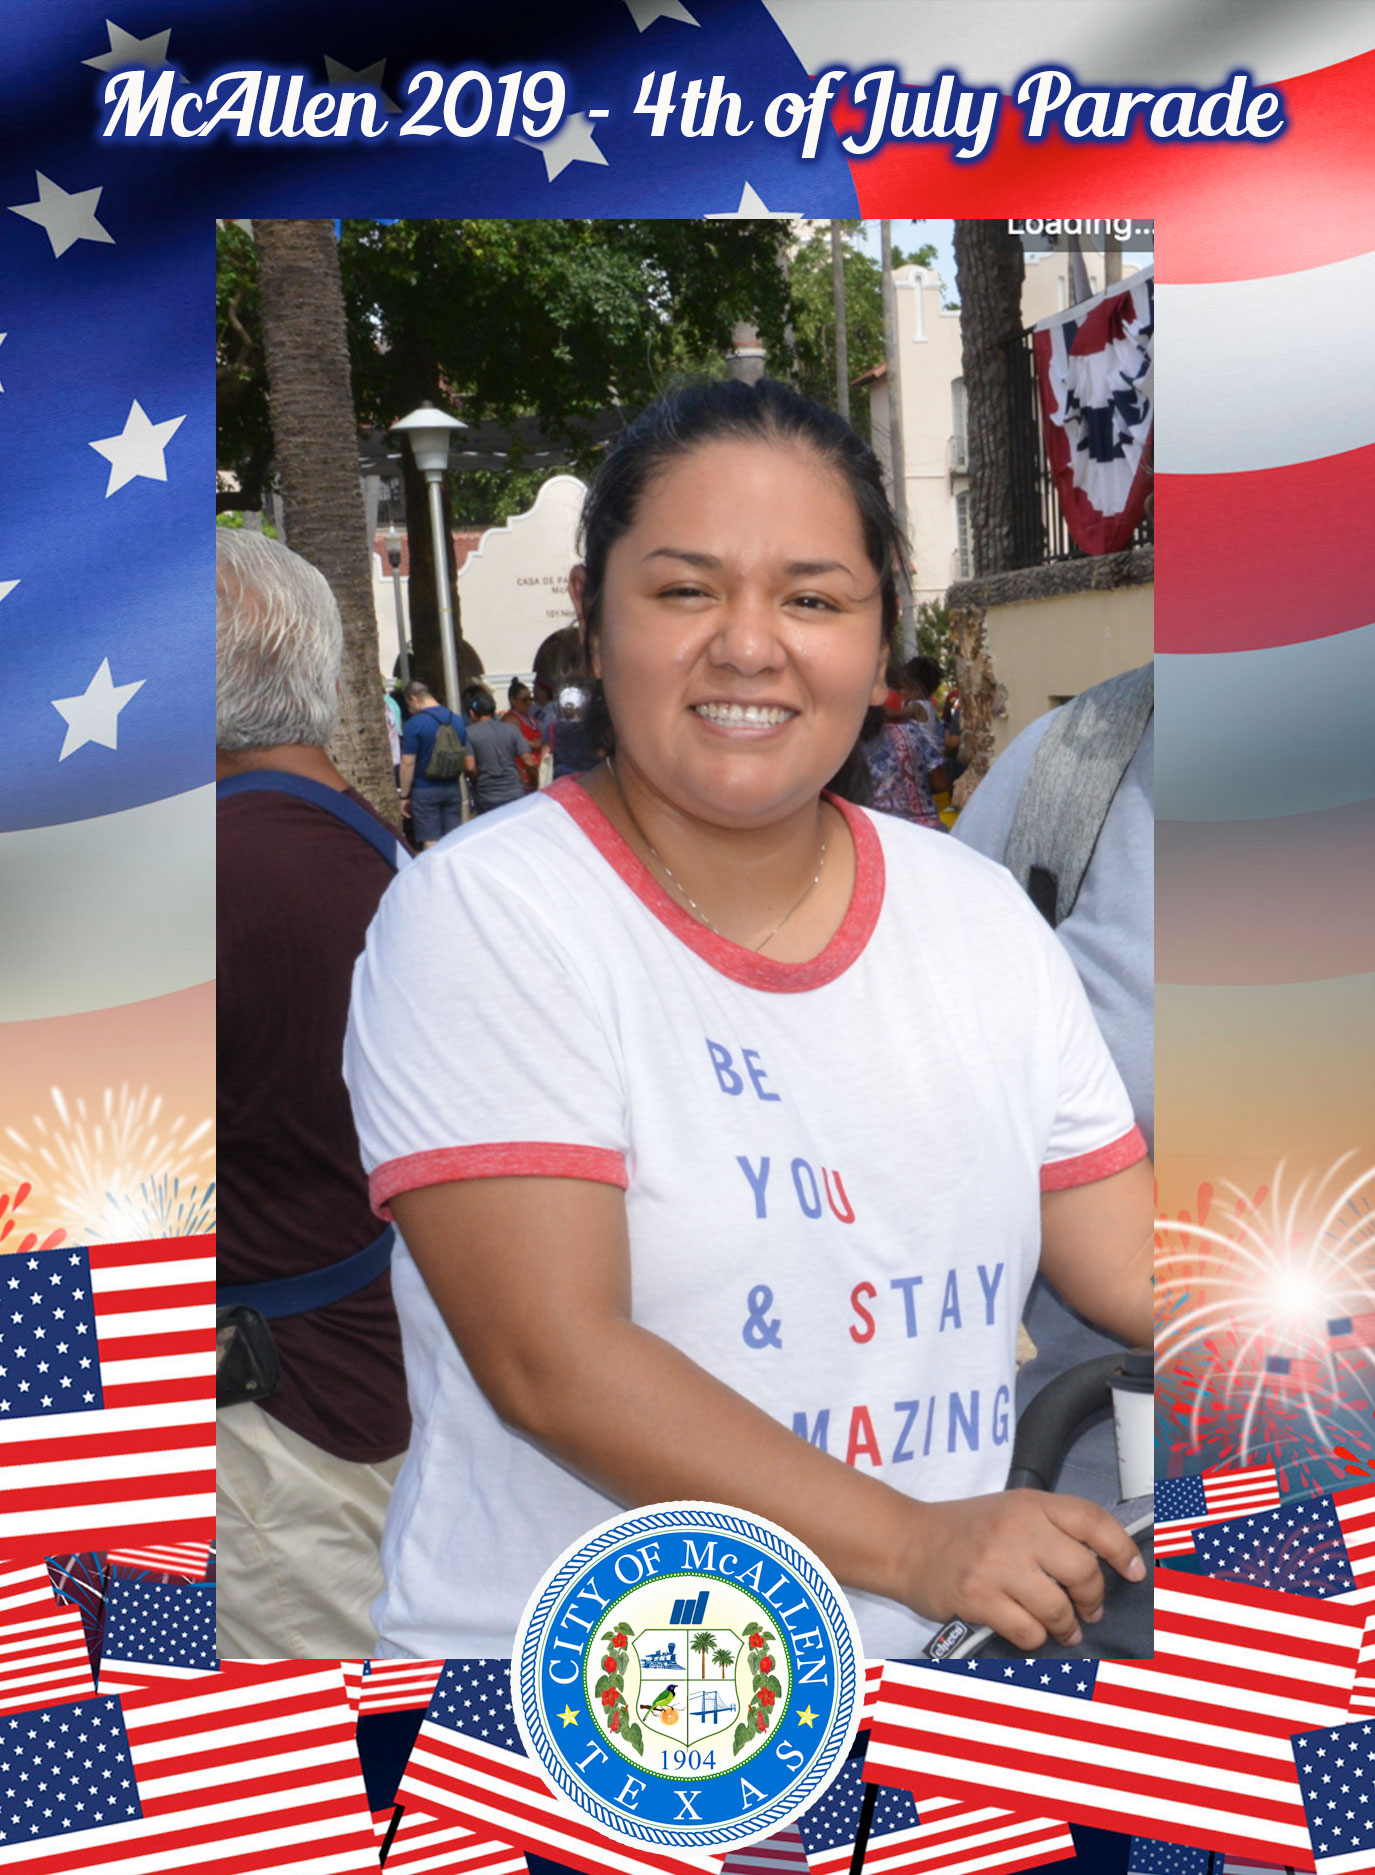 McAllen 4th of July Parade 2019 – Faces Part 2